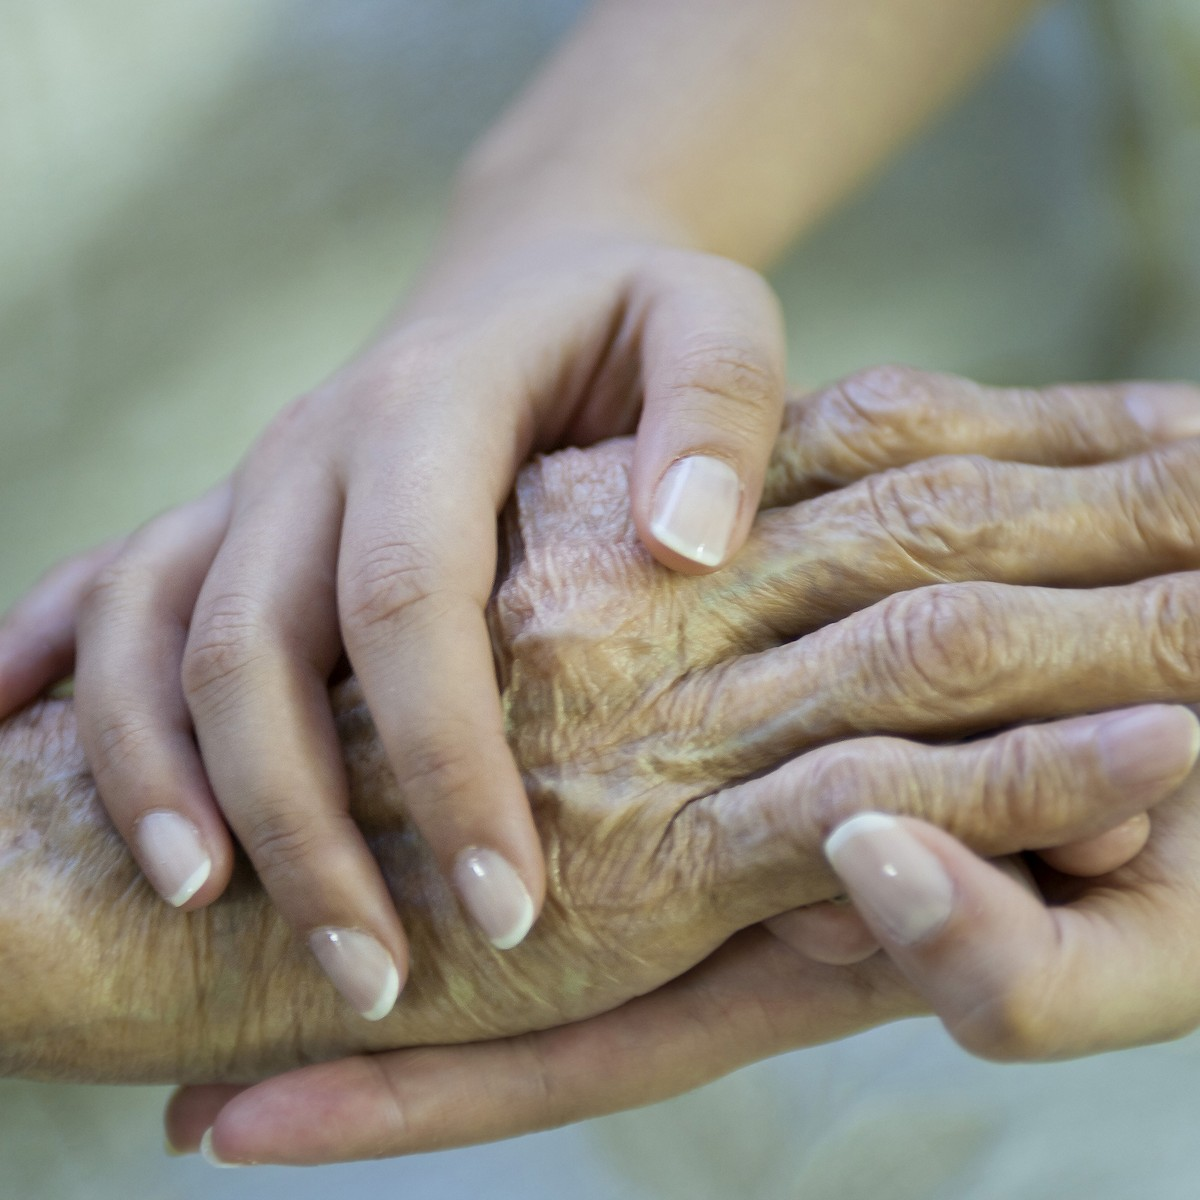 What can we do if we are told that a family member has cancer?